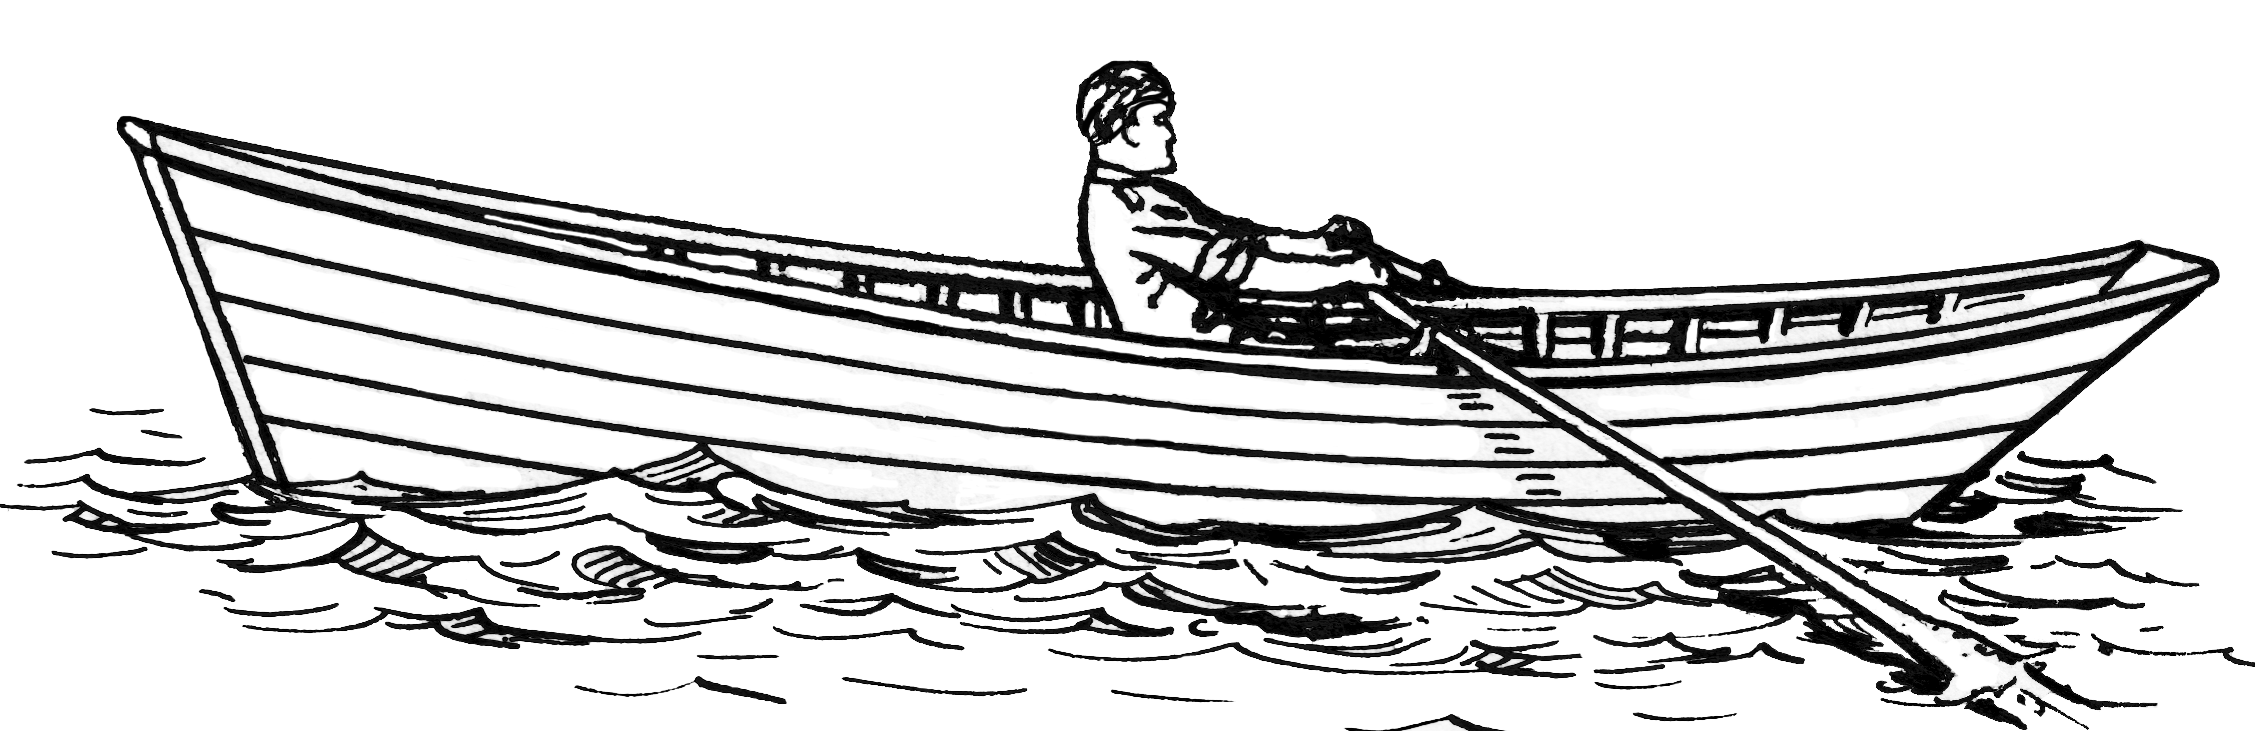 Line Drawing Boat : File dory boat psf wikimedia commons